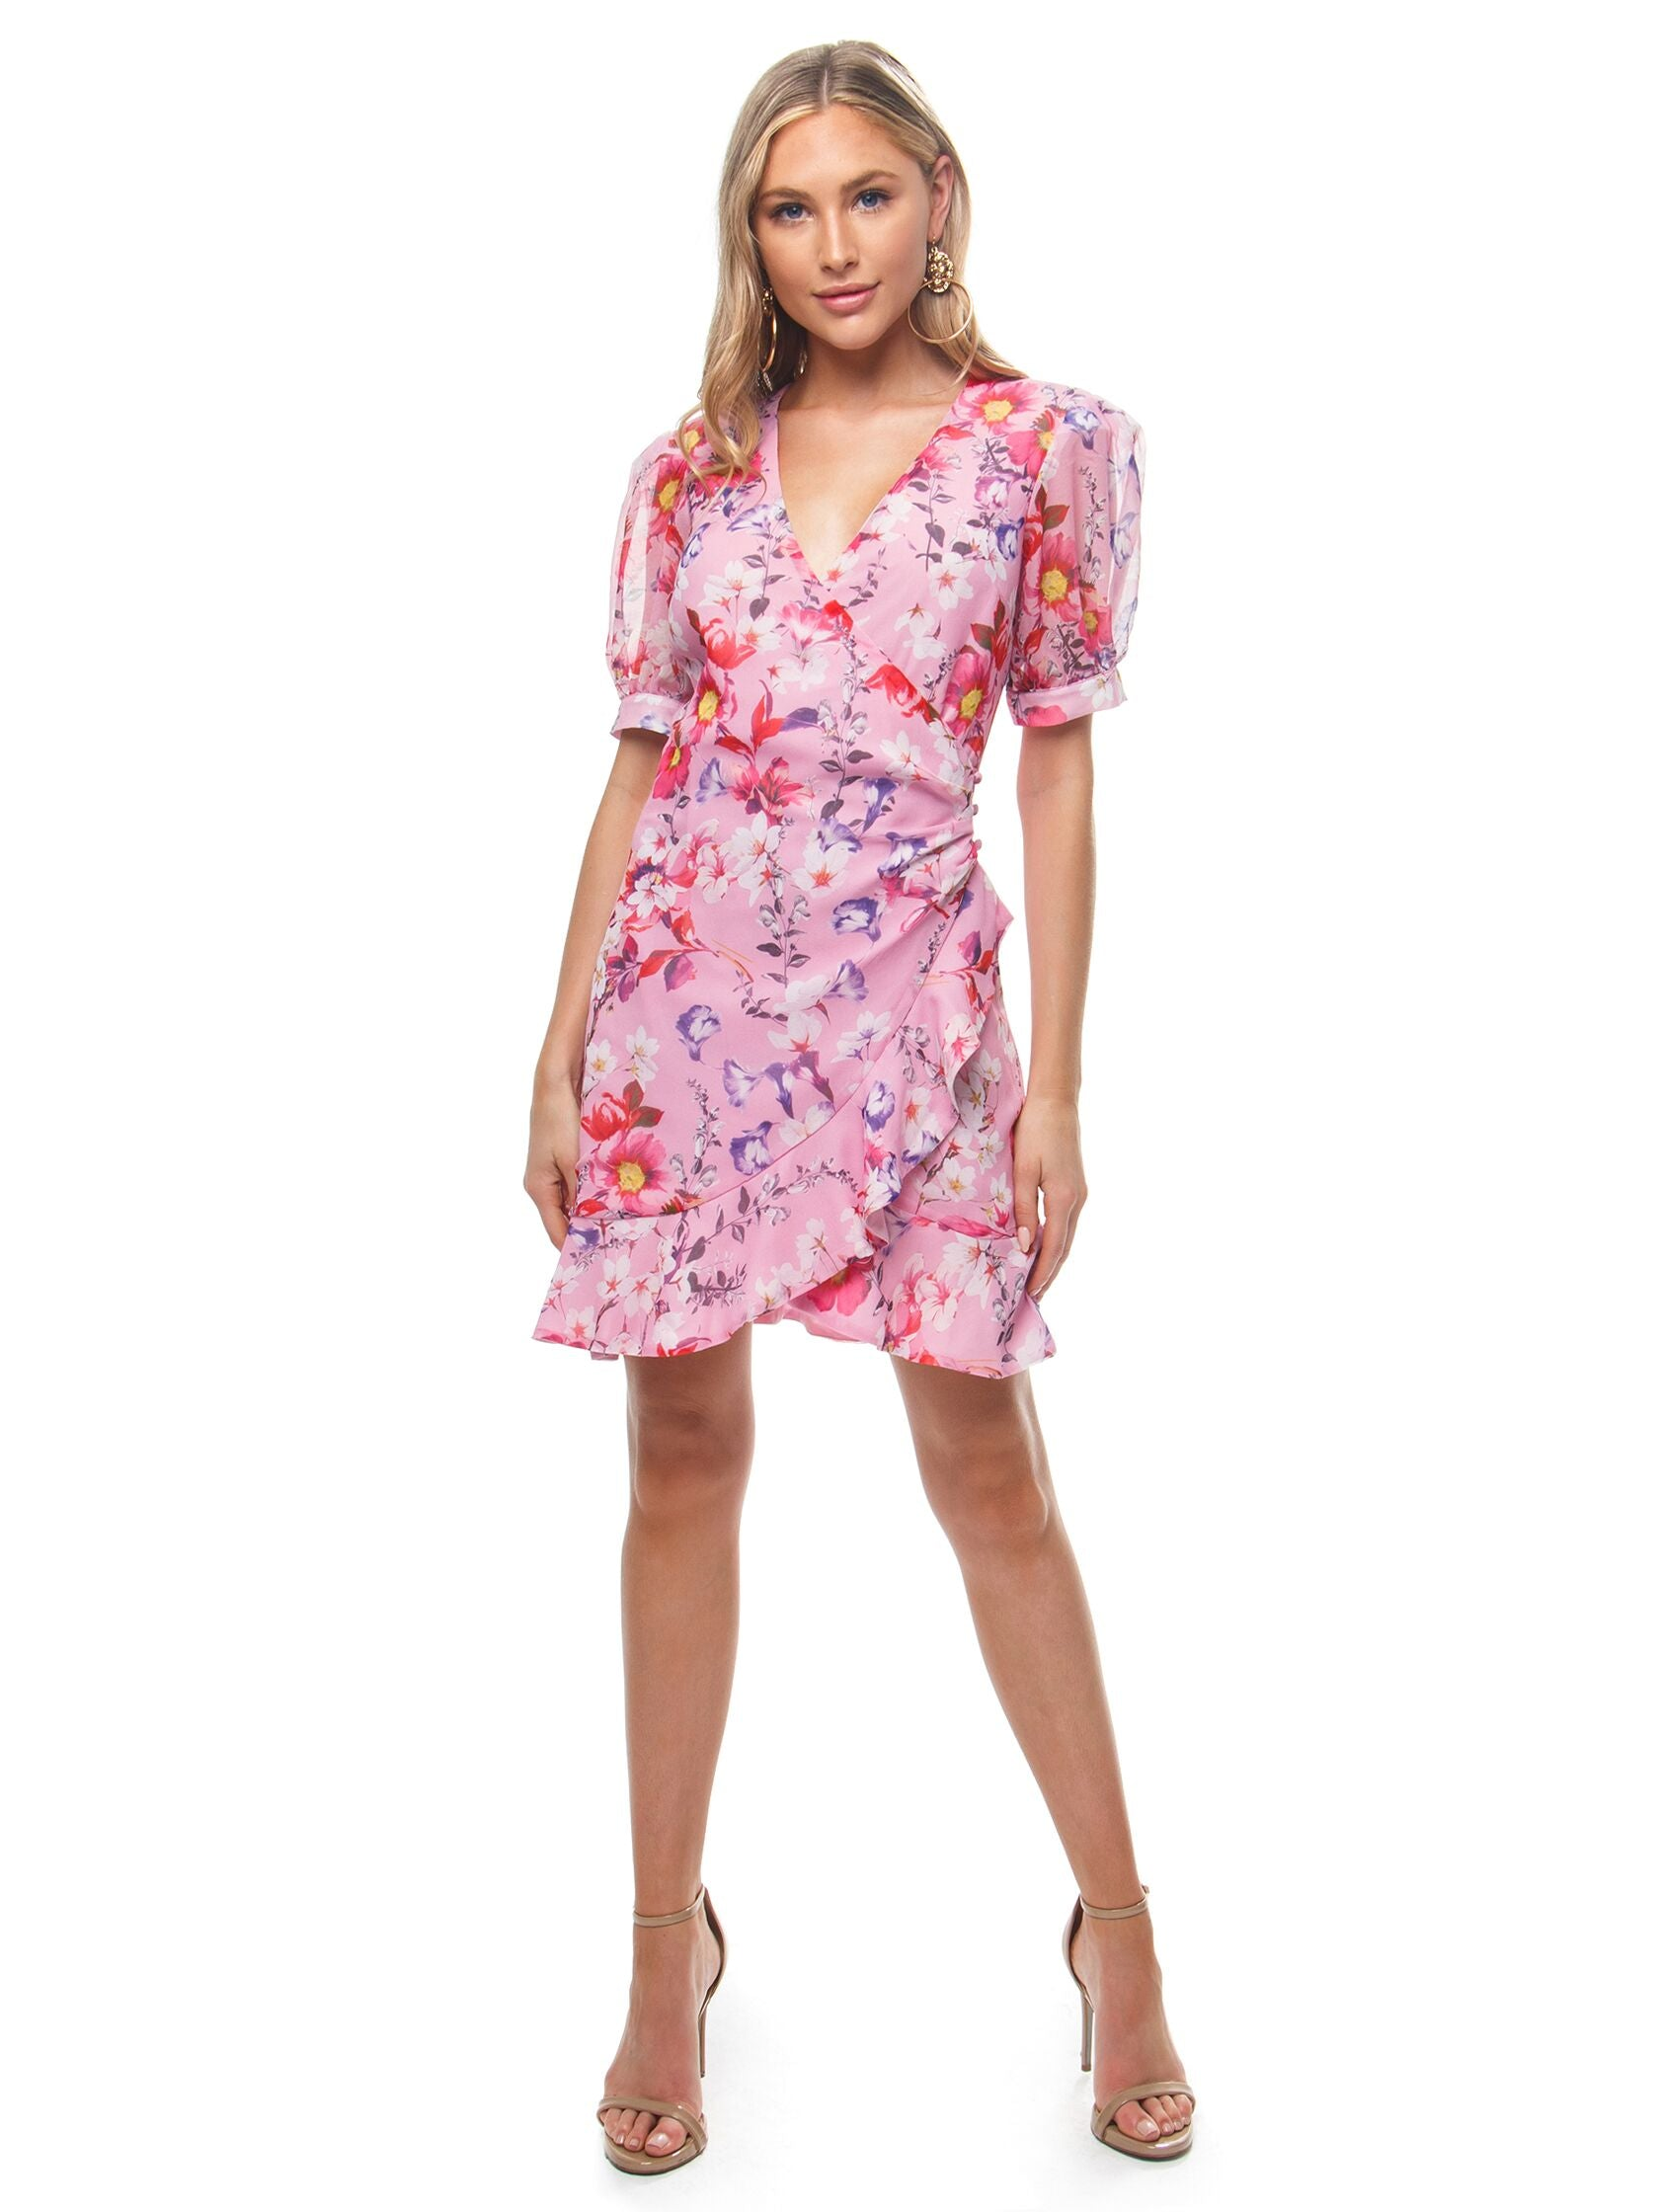 Girl outfit in a dress rental from BARDOT called Lorita Floral Dress